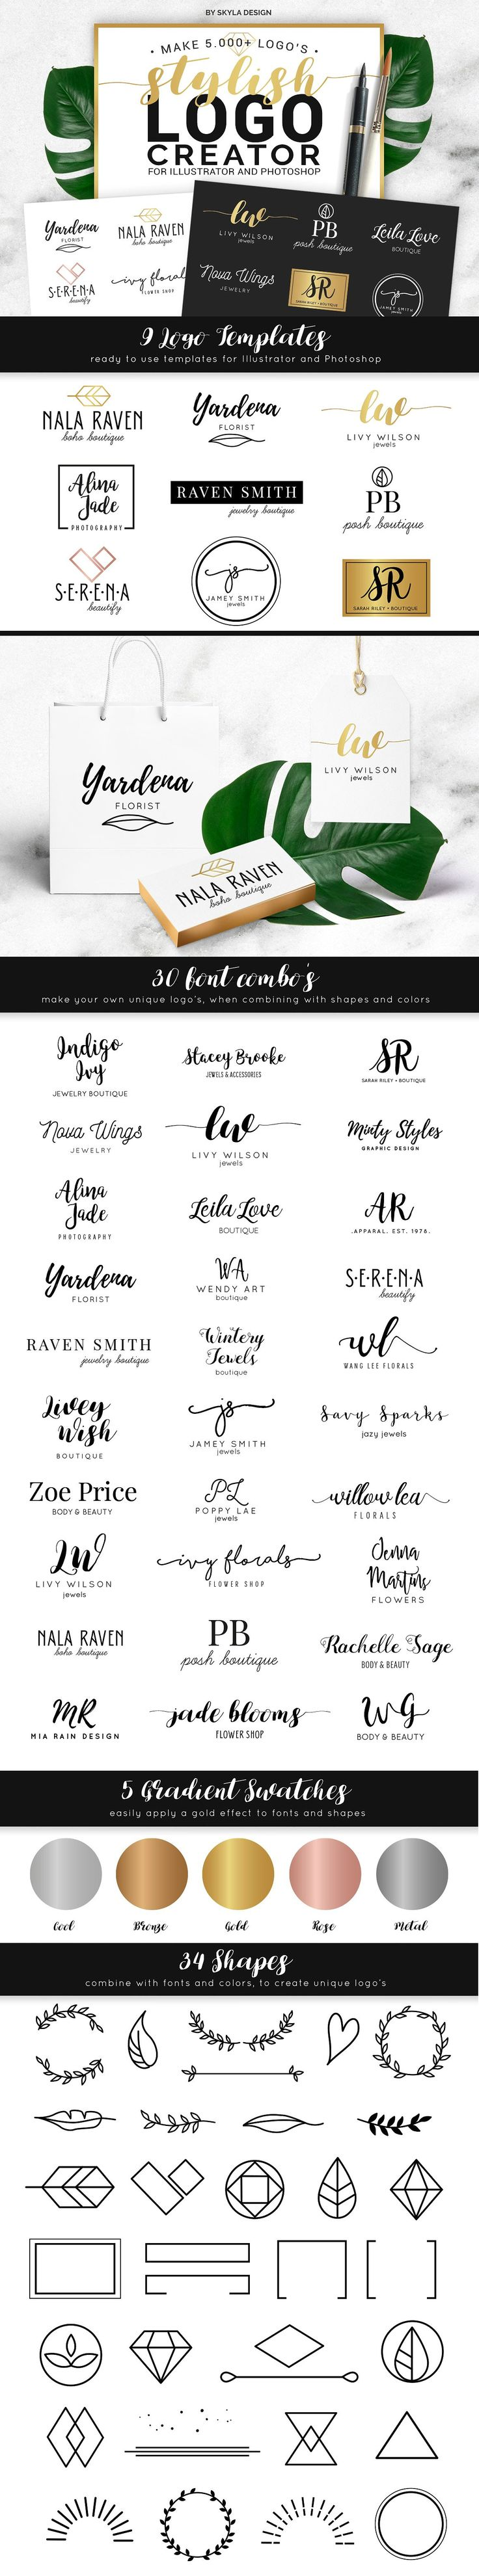 Stylish Logo Creator Kit AI + PS by skyladesign on @creativemarket